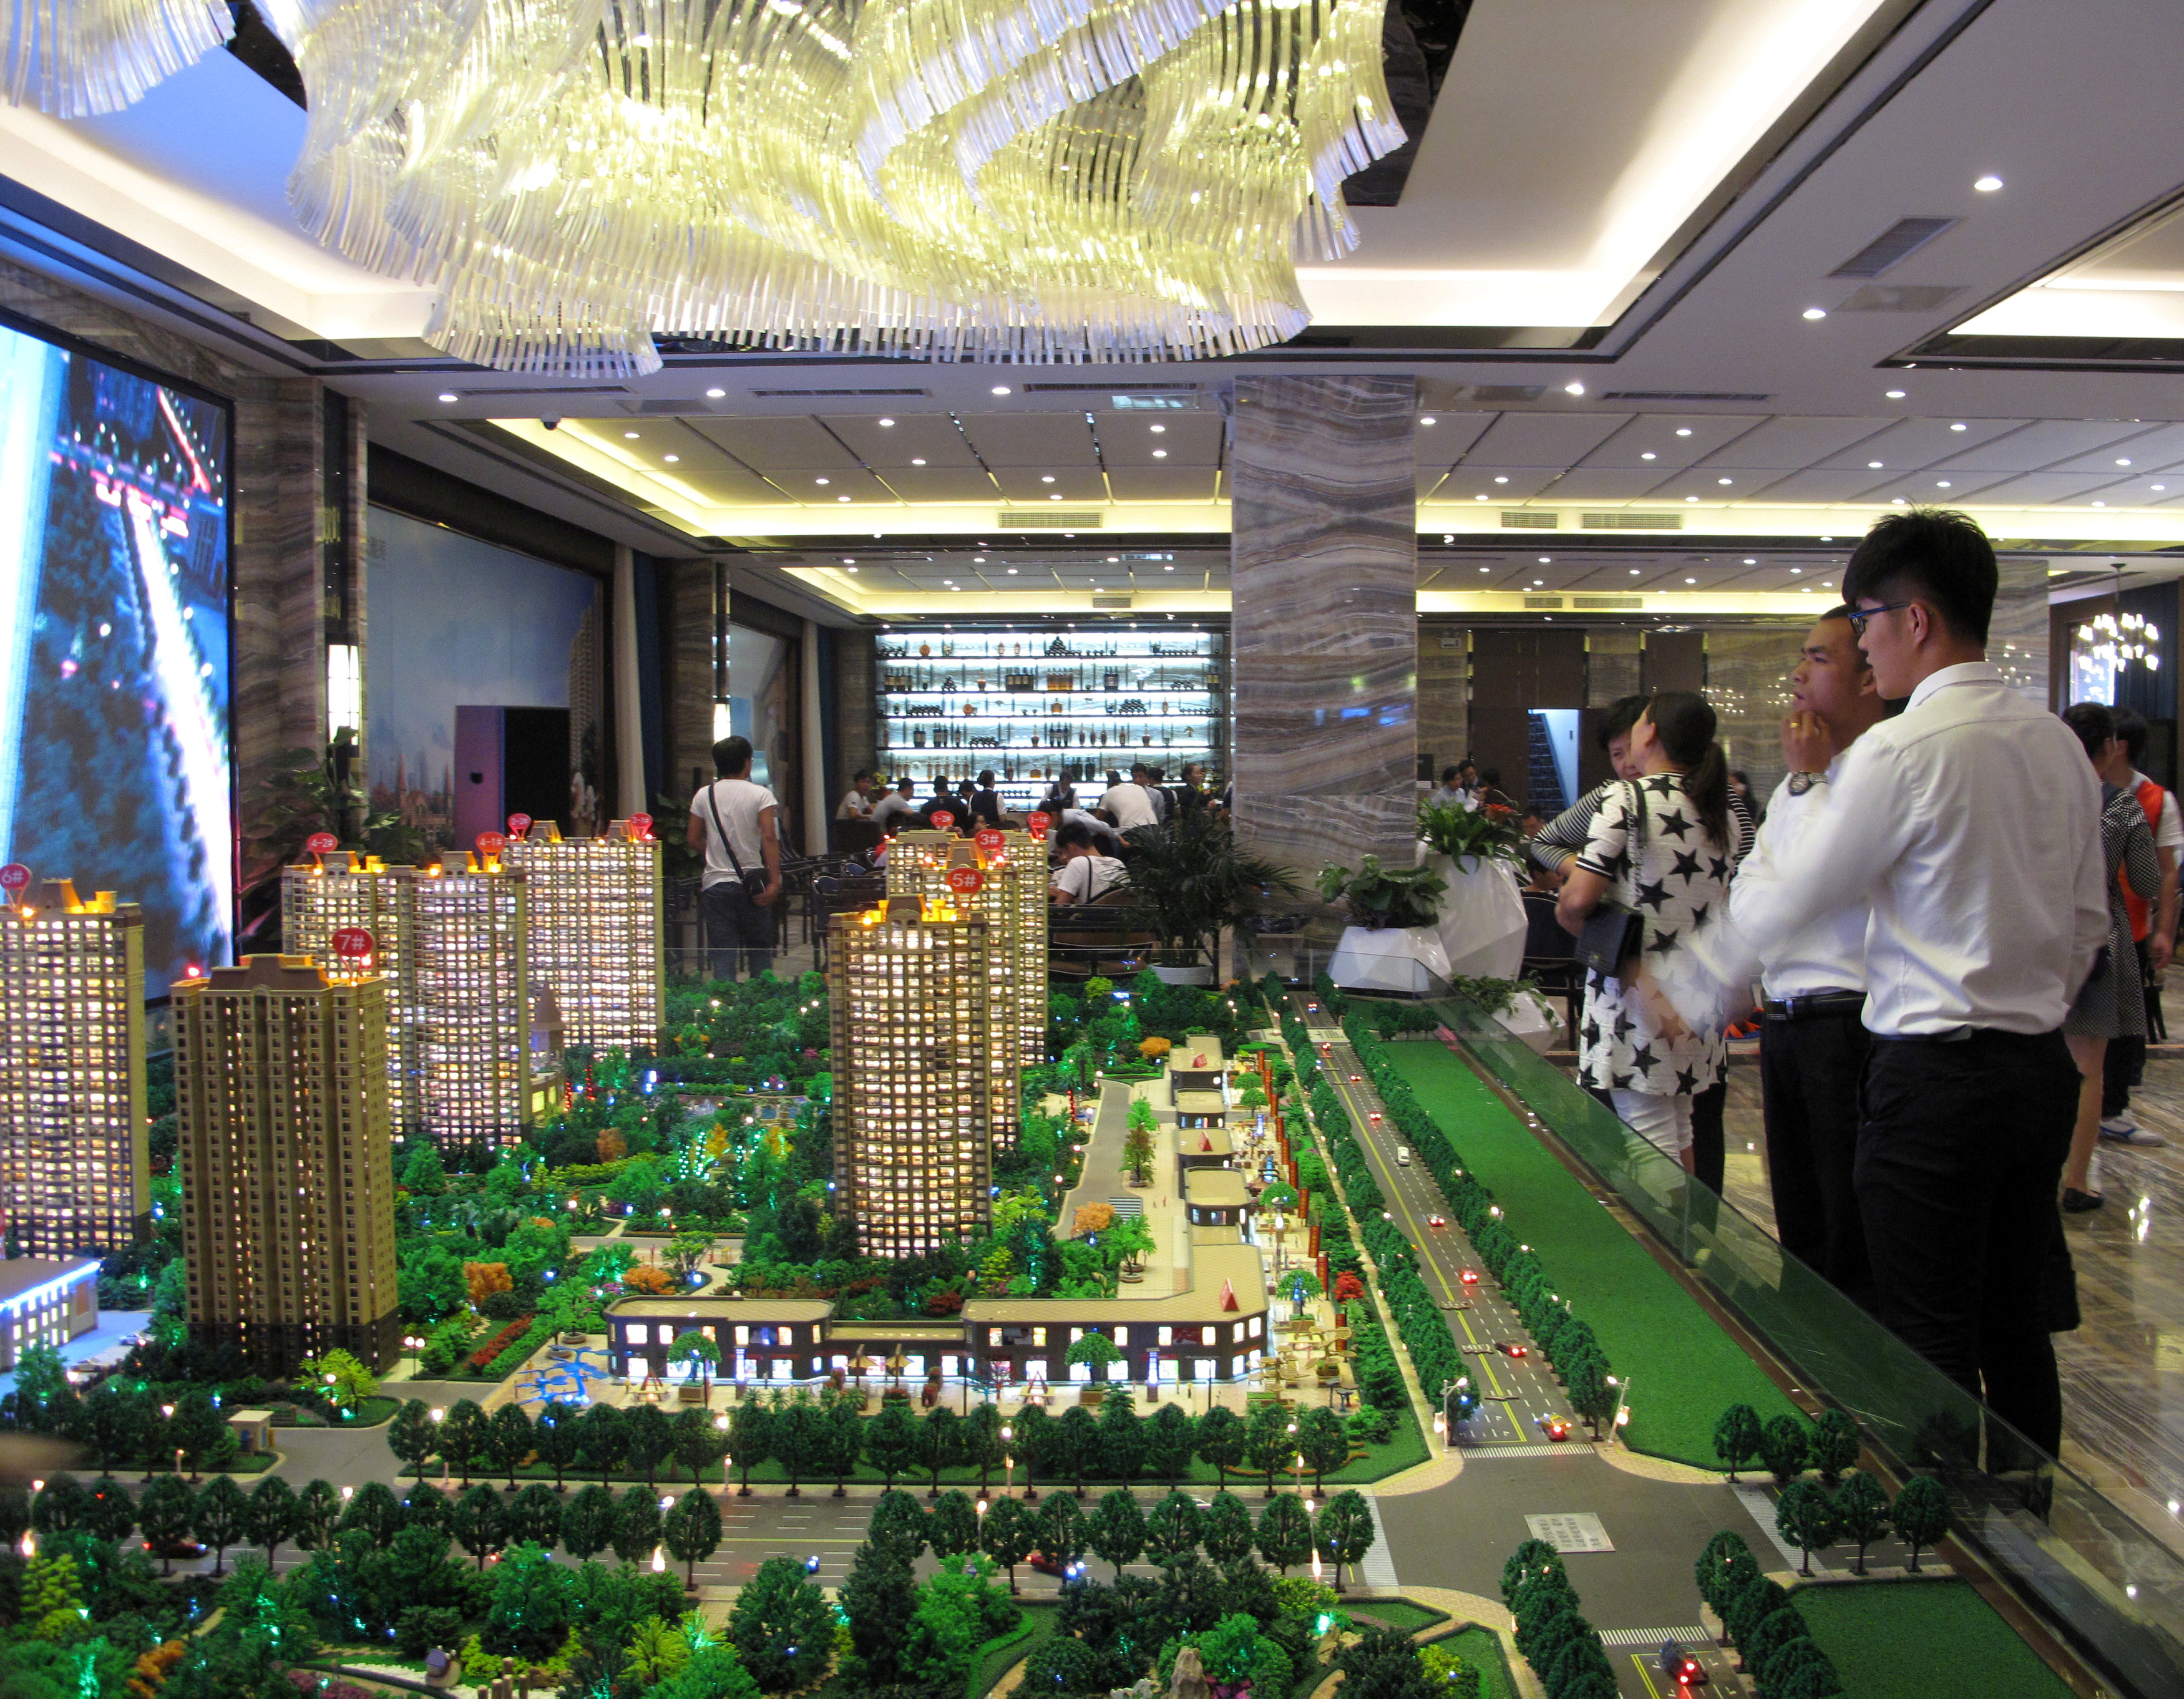 Models of residential buildings are seen at a sales center in Zhengzhou, in China's Henan province, on Sept. 23. | REUTERS